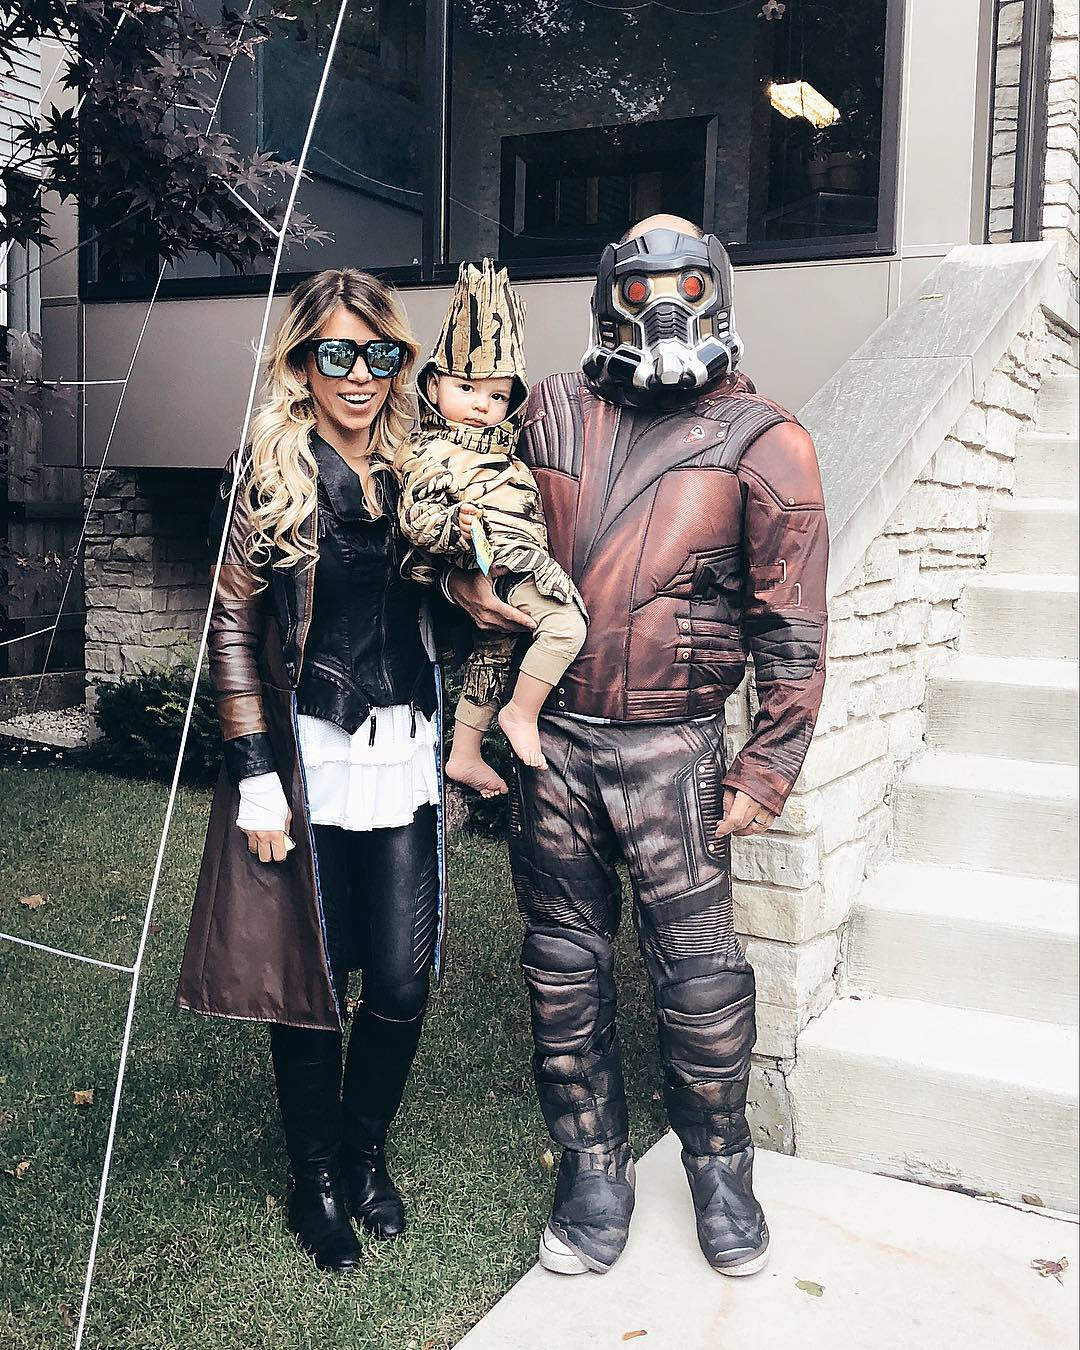 family halloween costumes, family halloween, halloween ideas, halloween costumes, mom blogger, mommy blogger, motherhood, mommy and me halloween, Chicago mom, Chicago blogger, Chicago influencer, mommy influencer